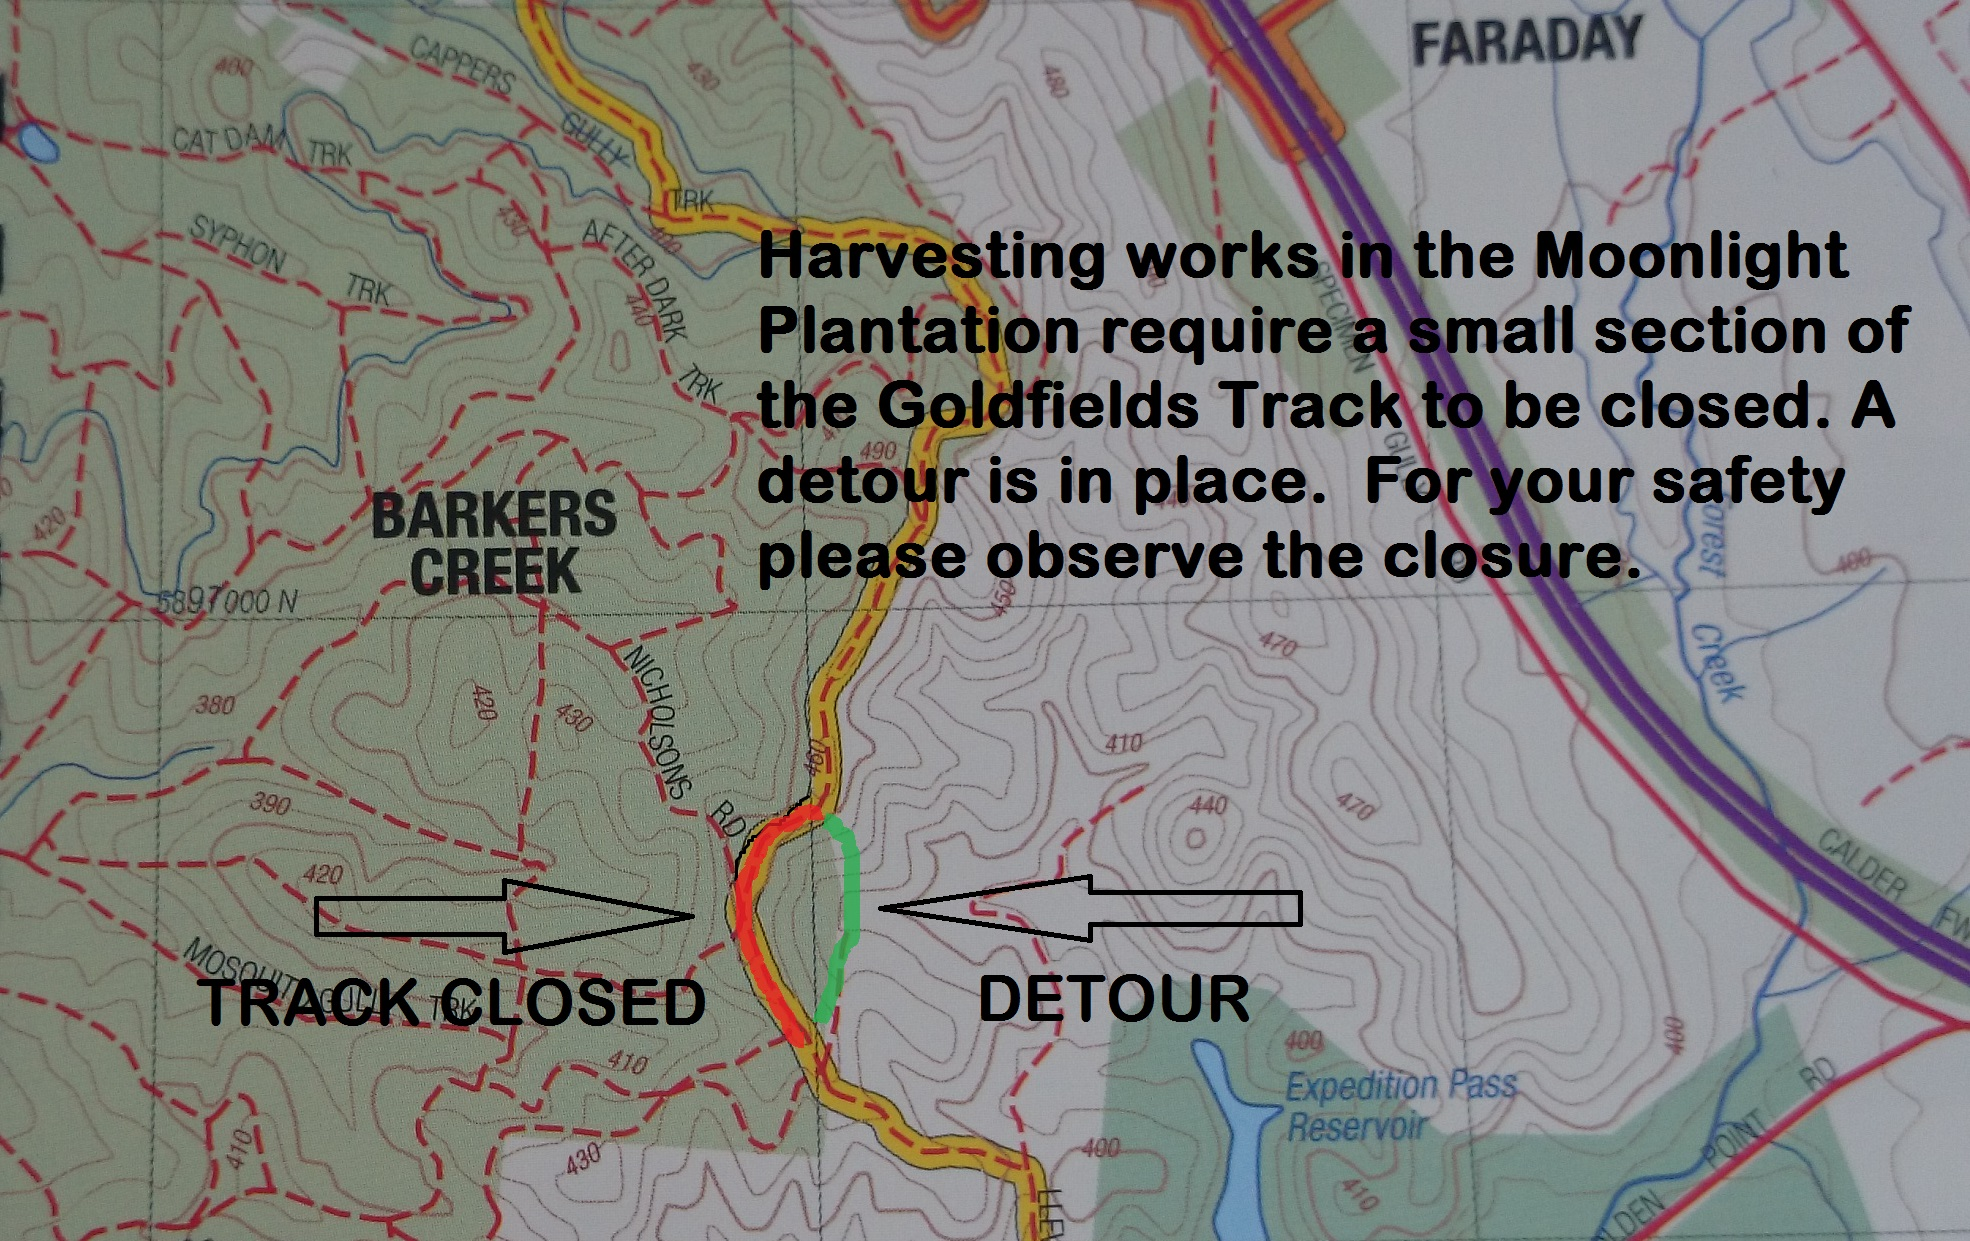 Track closures due to plantation works.